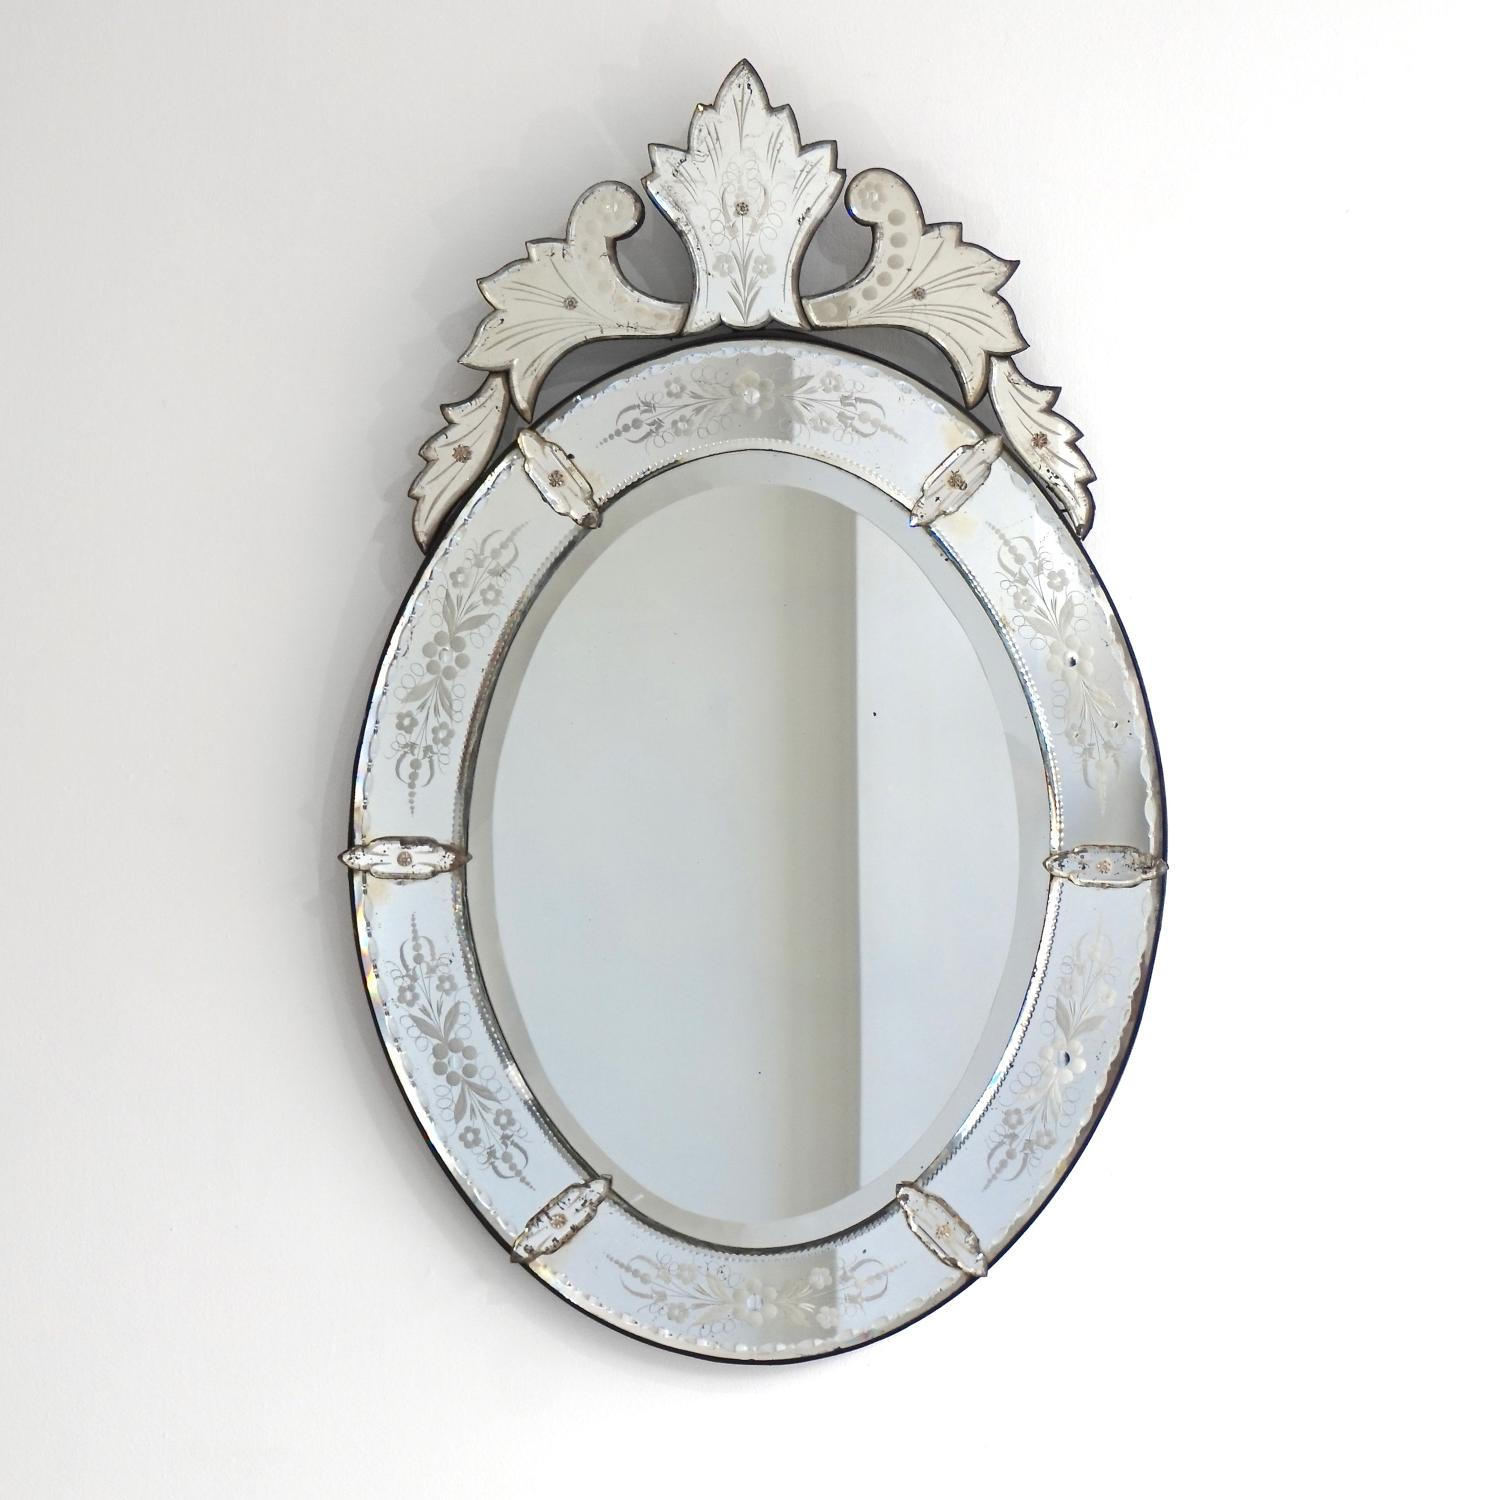 EXQUISITE 19TH CENTURY OVAL VENETIAN MIRROR